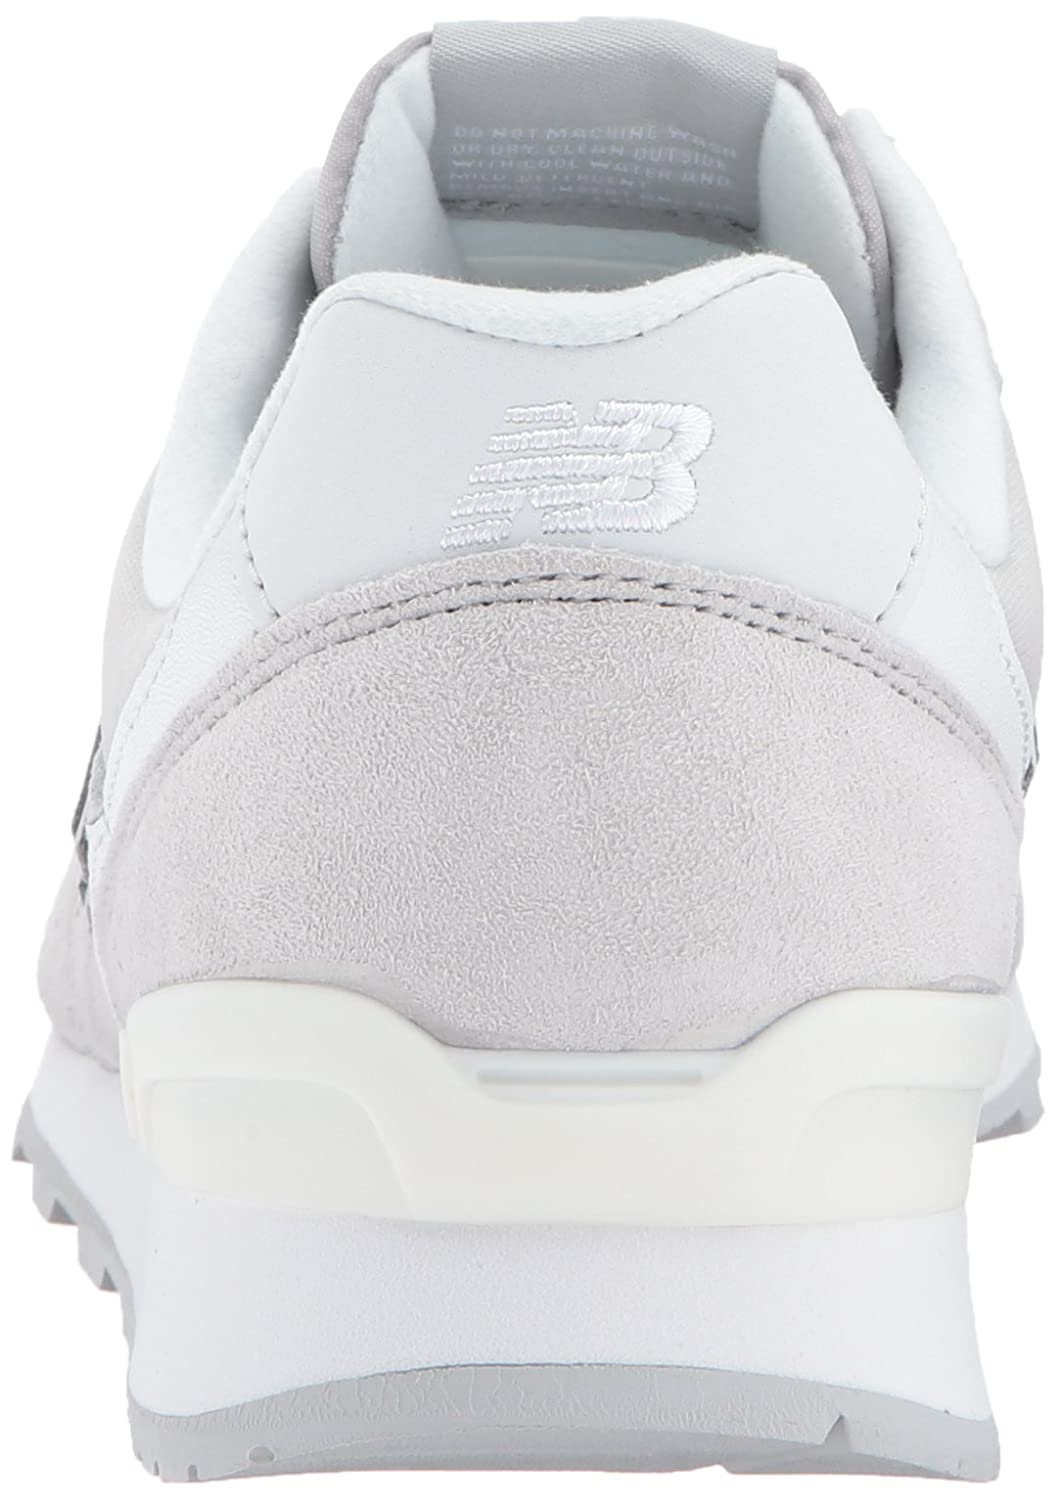 New Balance Women's 696 US|Overcast/Sea v1 Sneaker B01N1I1ERO 10 B(M) US|Overcast/Sea 696 Salt a6cc4d